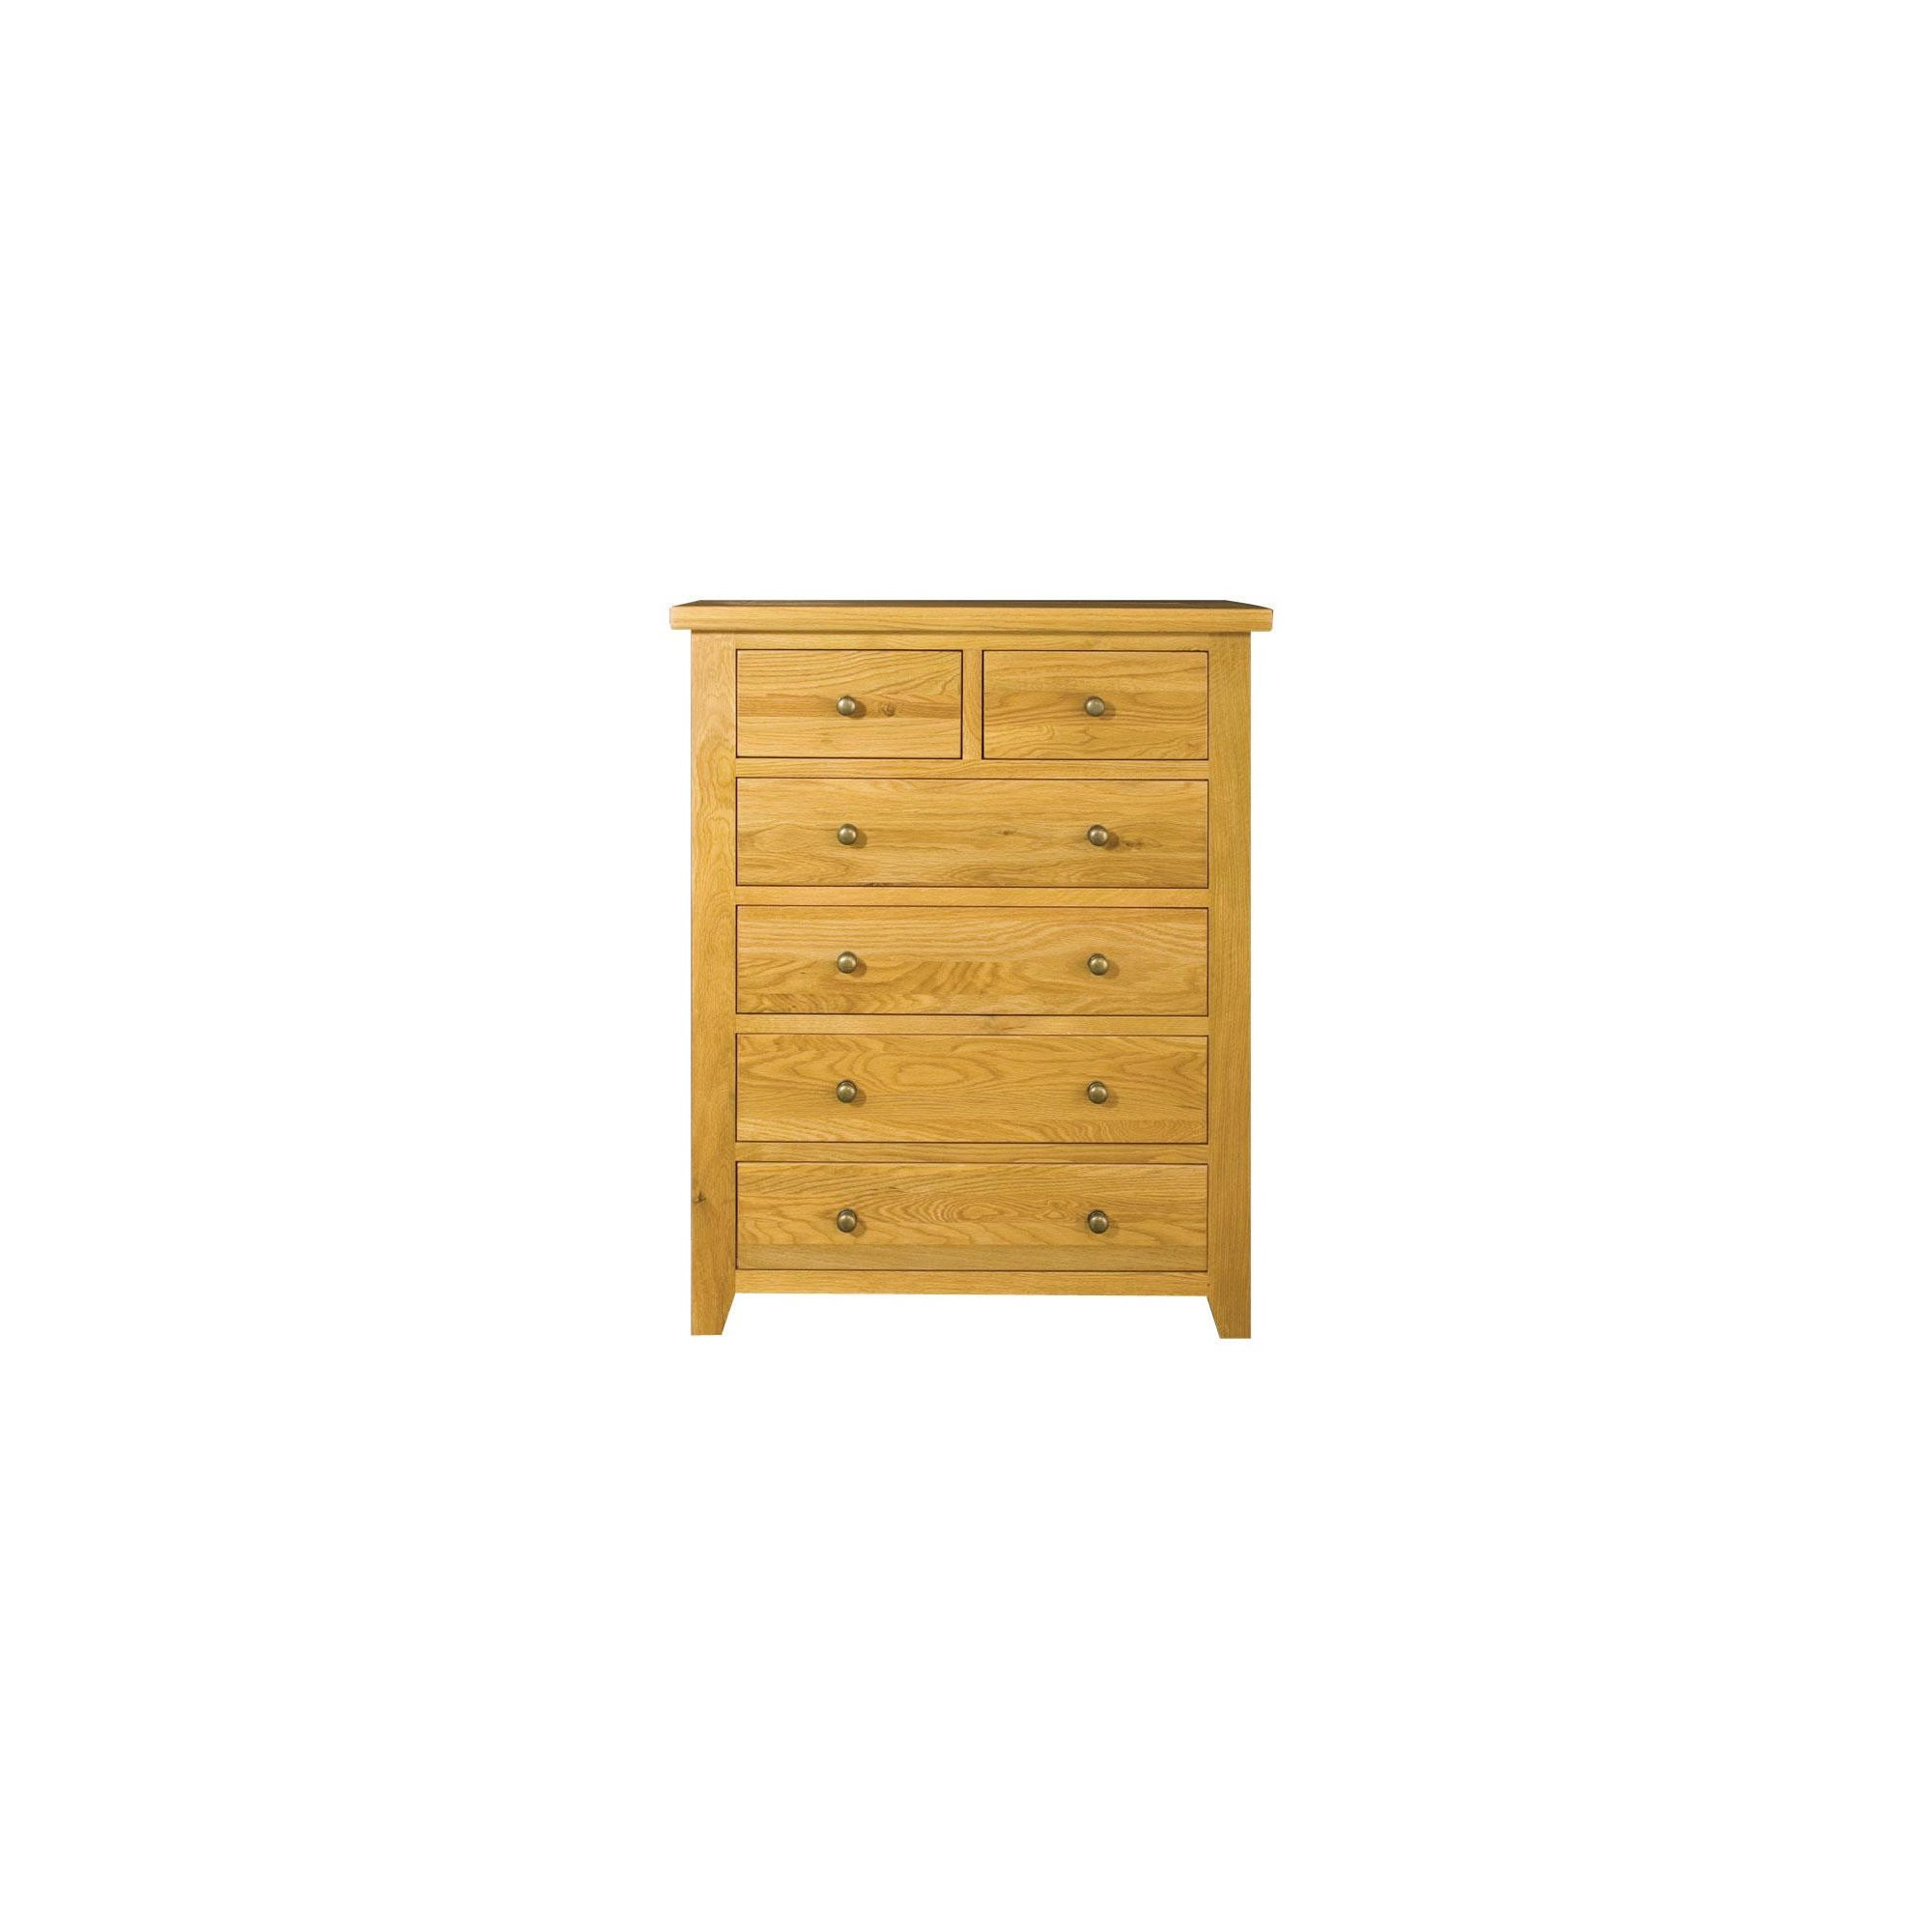 Alterton Furniture Vermont 2 over 4 Drawer Chest at Tescos Direct